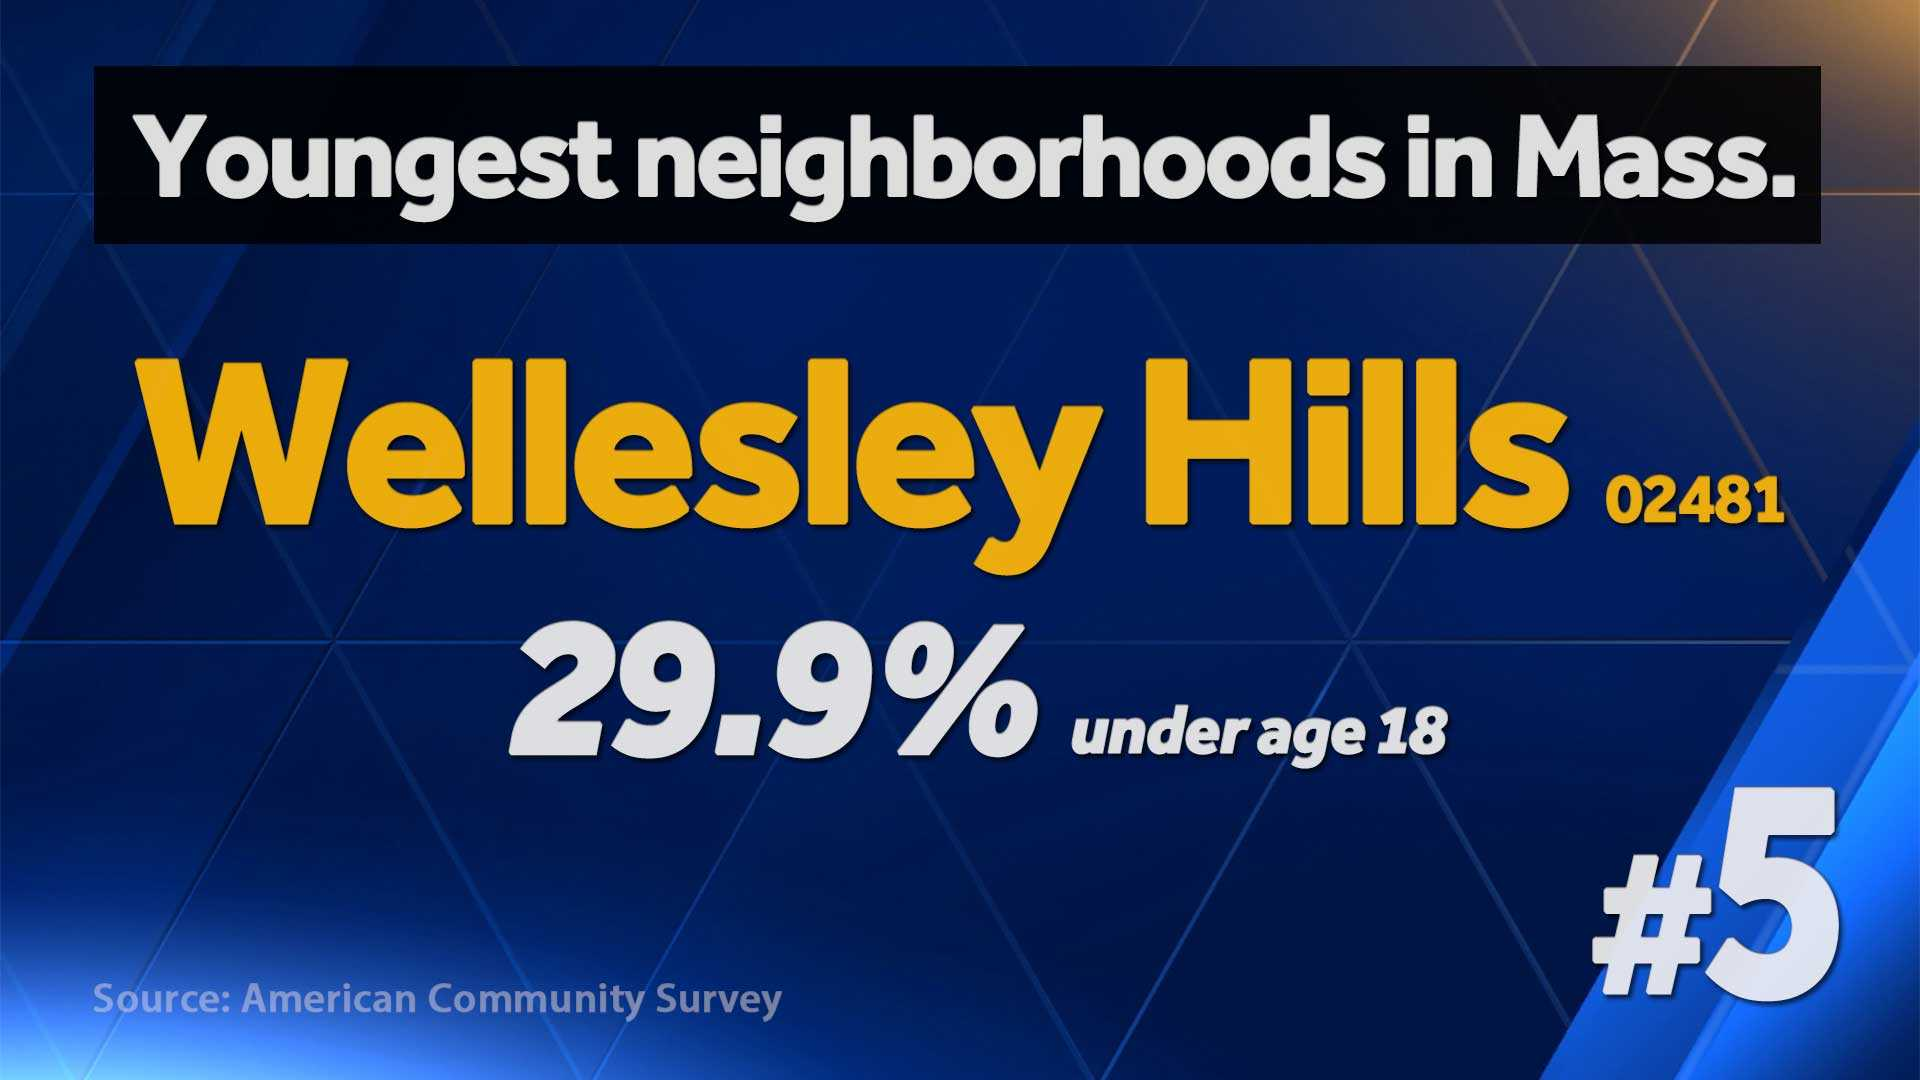 Youngest neighborhoods slide